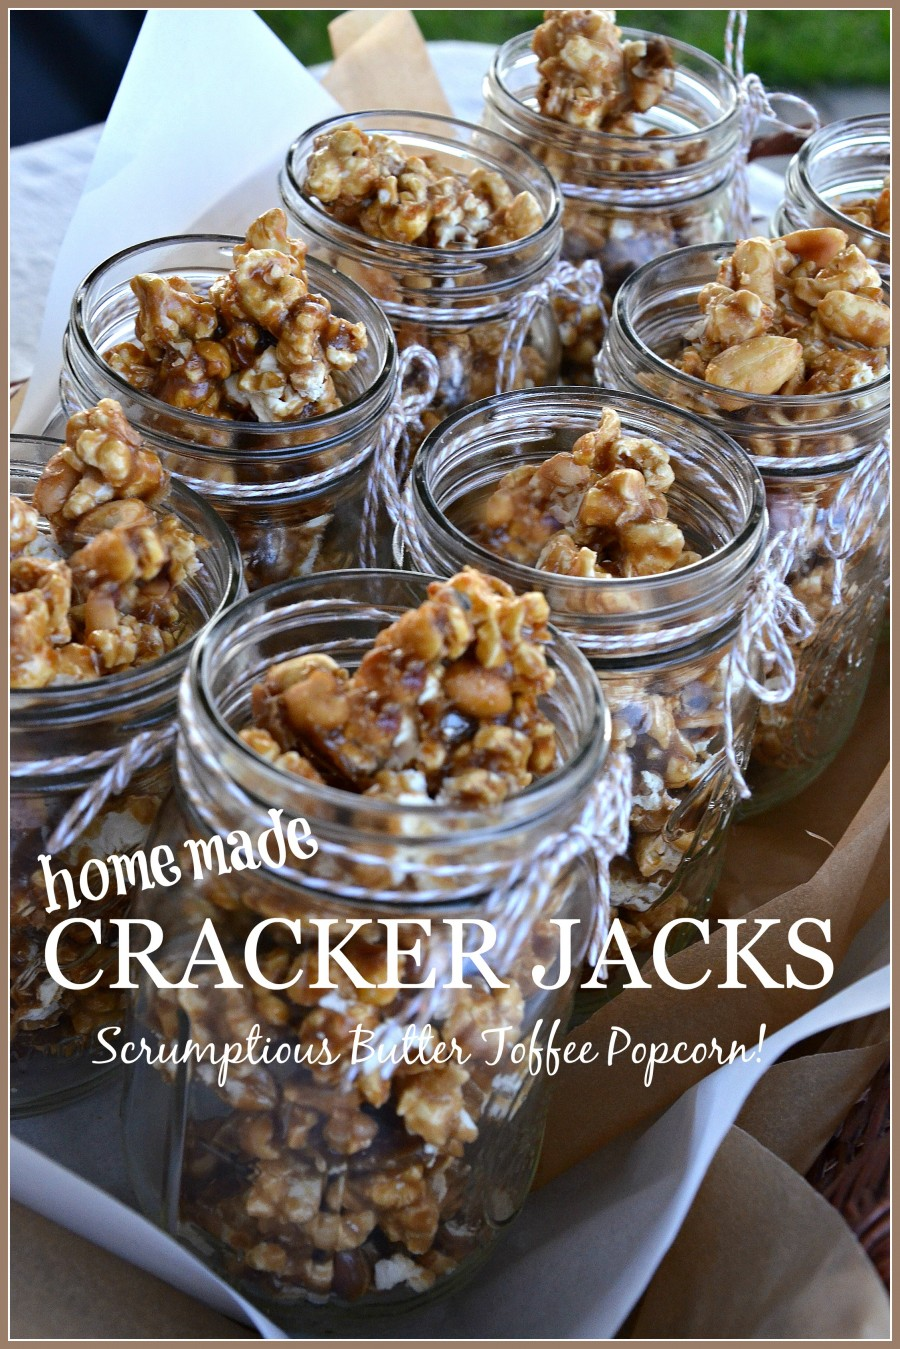 HOMEMADE CRACKER JACKS WITH PEANUTS- So much better than you remember!